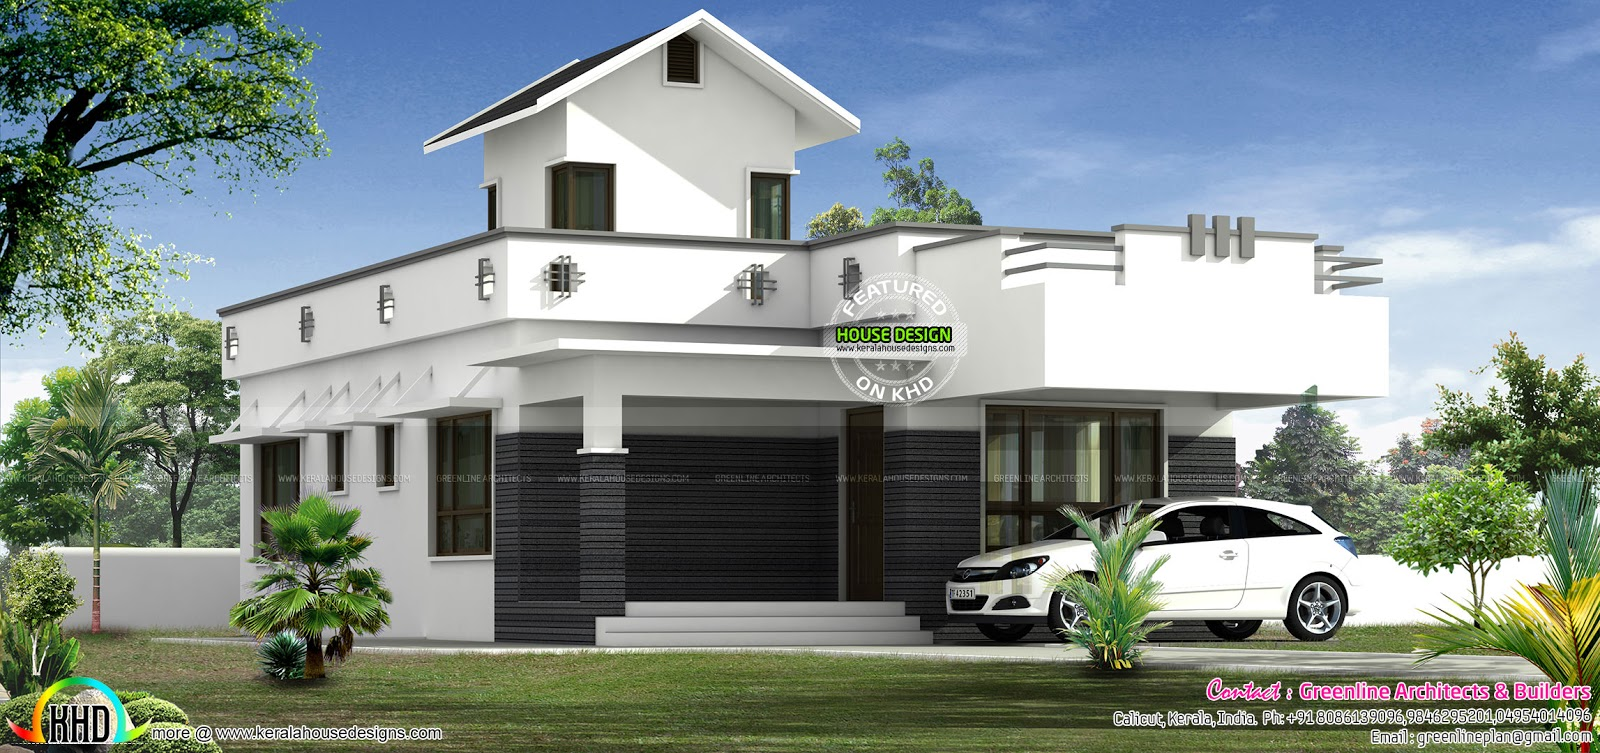 1000 sq ft 15 lakhs budget home kerala home design and for Homes on budget com